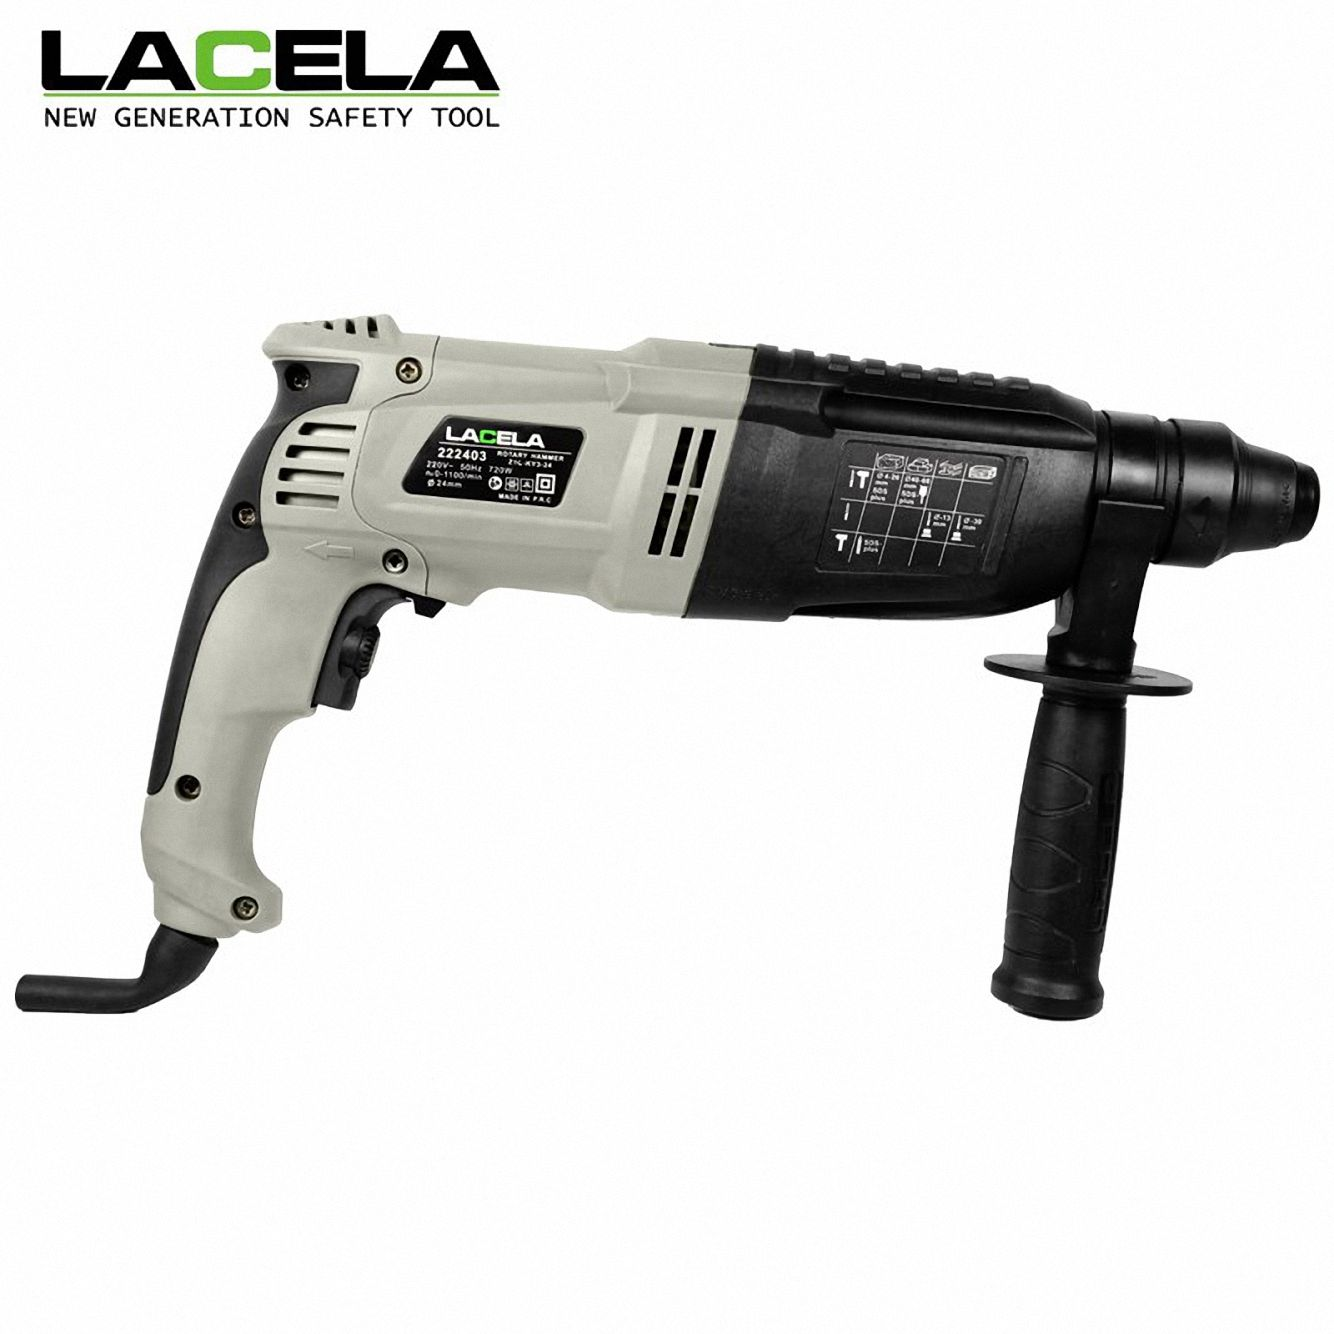 3 Functions Concrete Hammer 24mm Rotary Hammer Dril Machine Variable speed Electric Power Tool